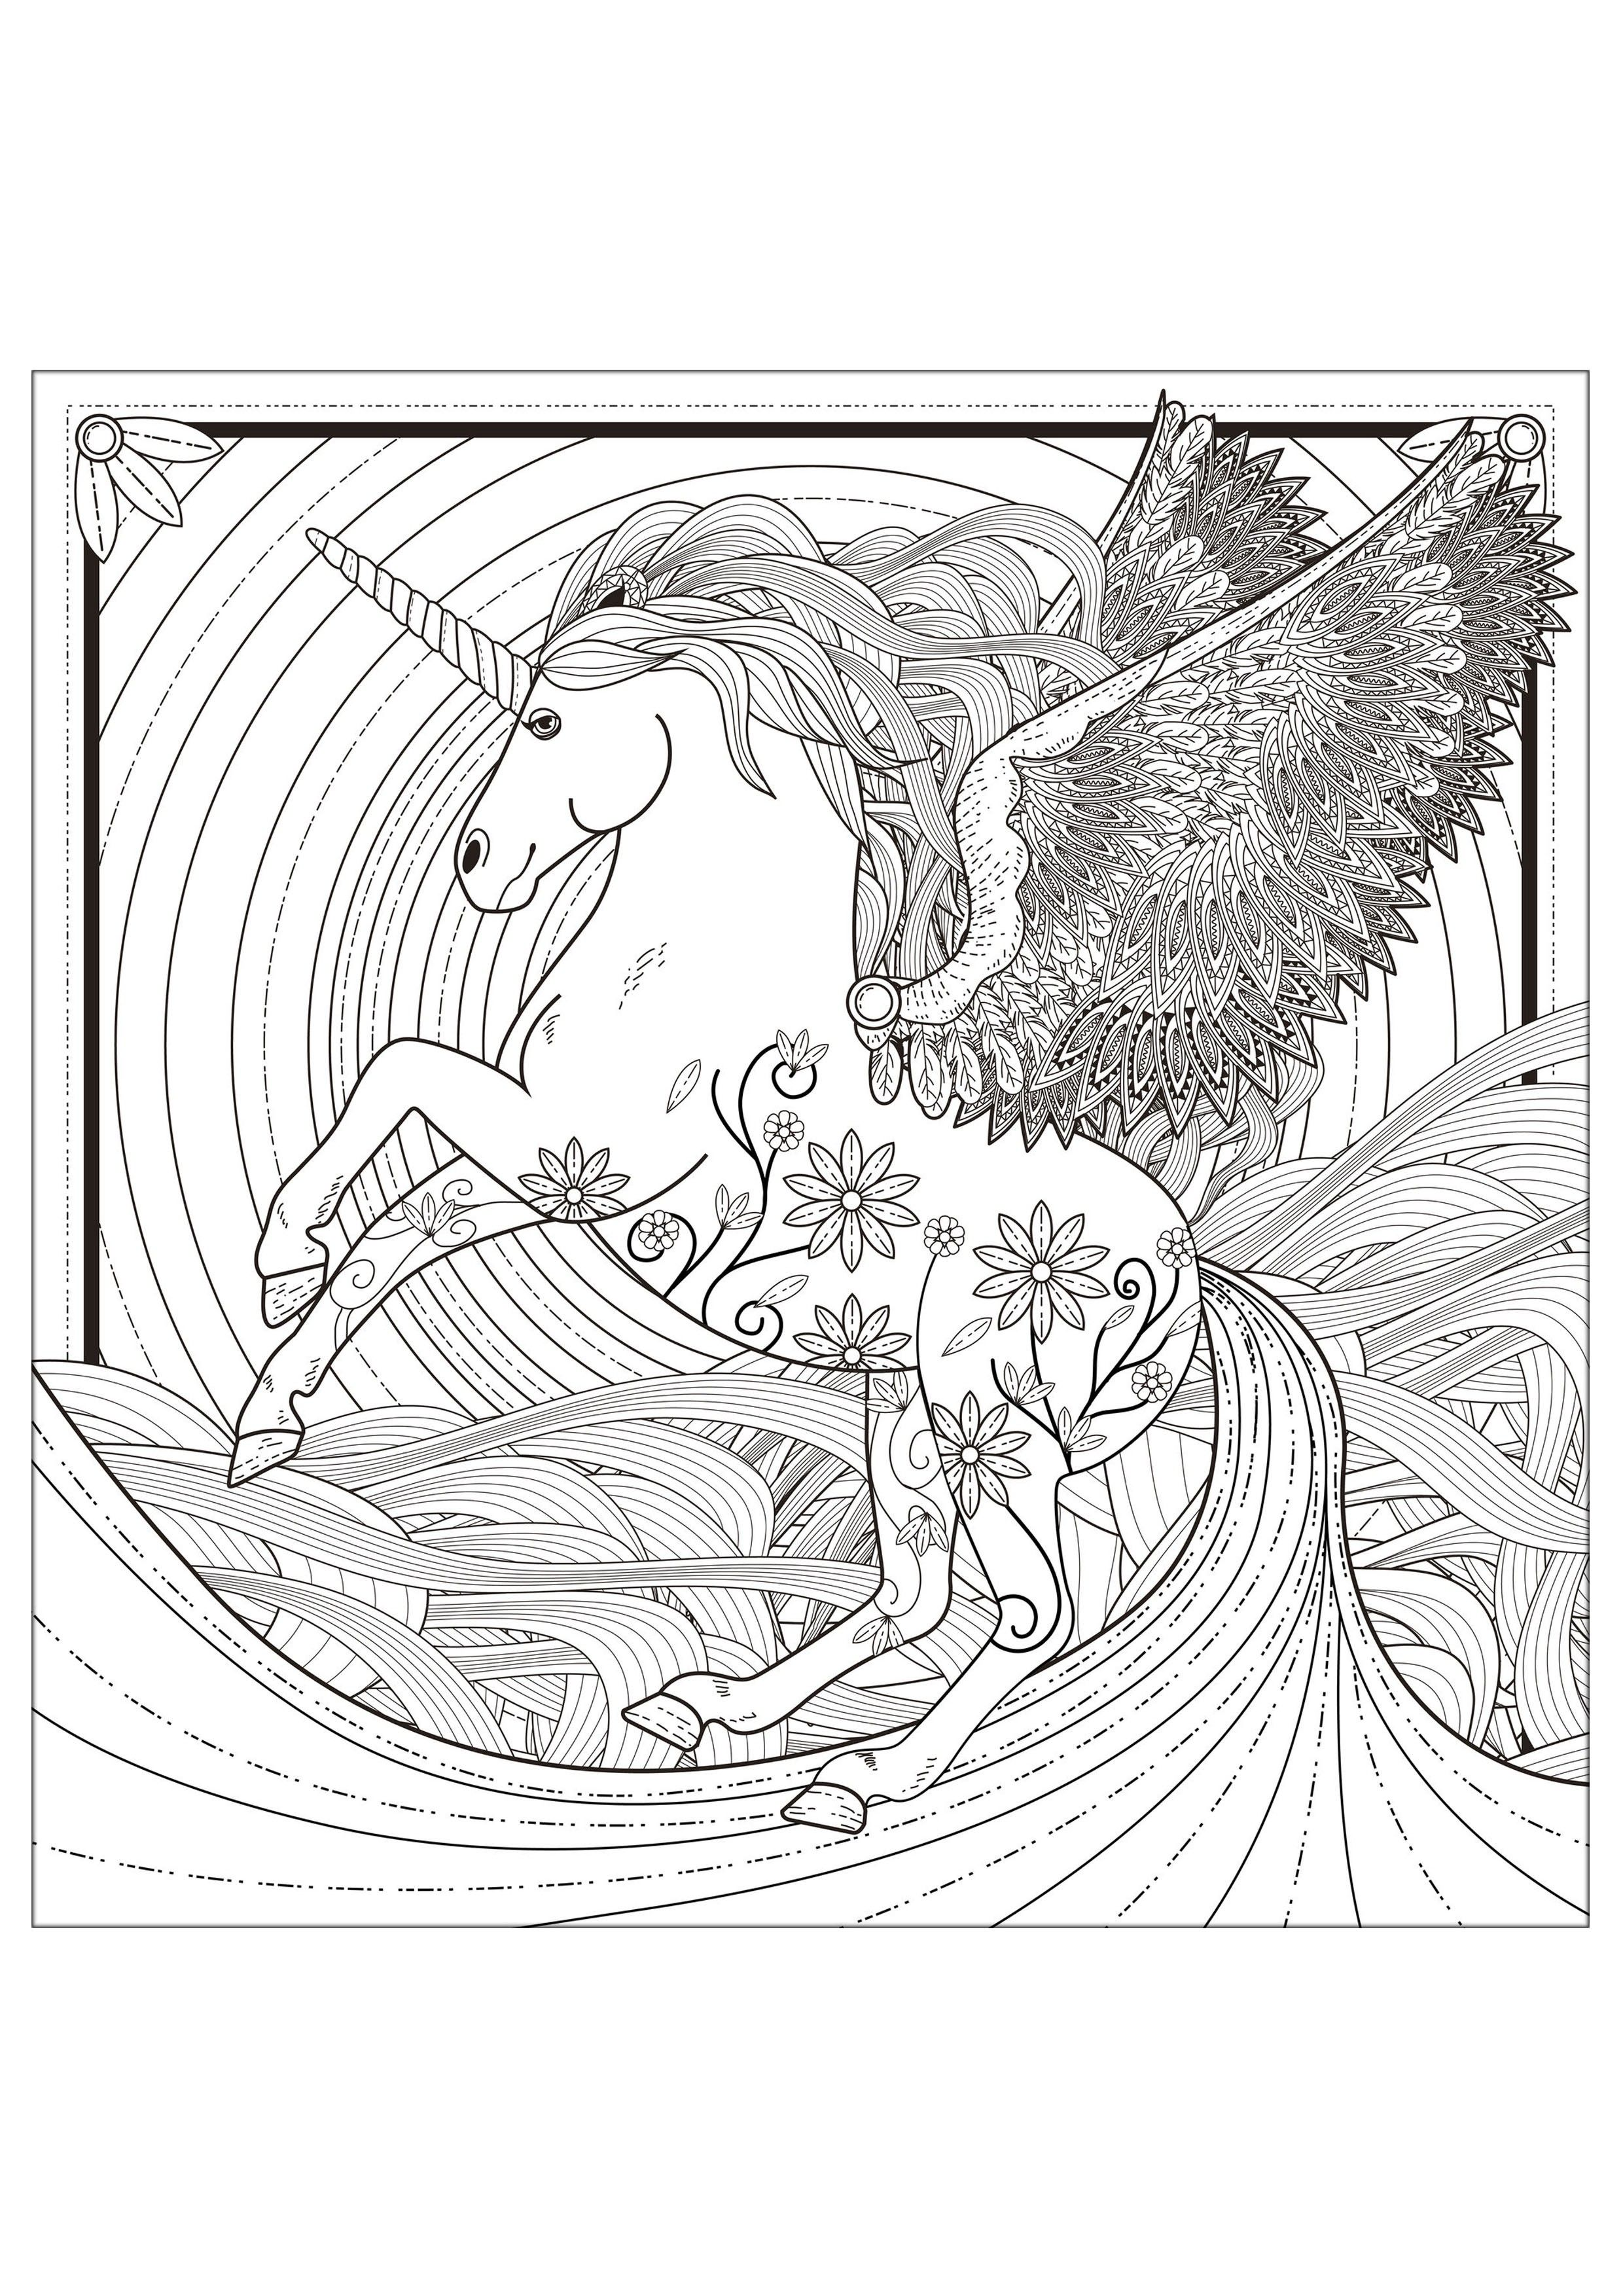 Unicorn Unicorns Difficult Coloring For Adults Paginas Para Colorear Dibujos Para Colorear Adultos Imagenes Para Colorear Para Adultos